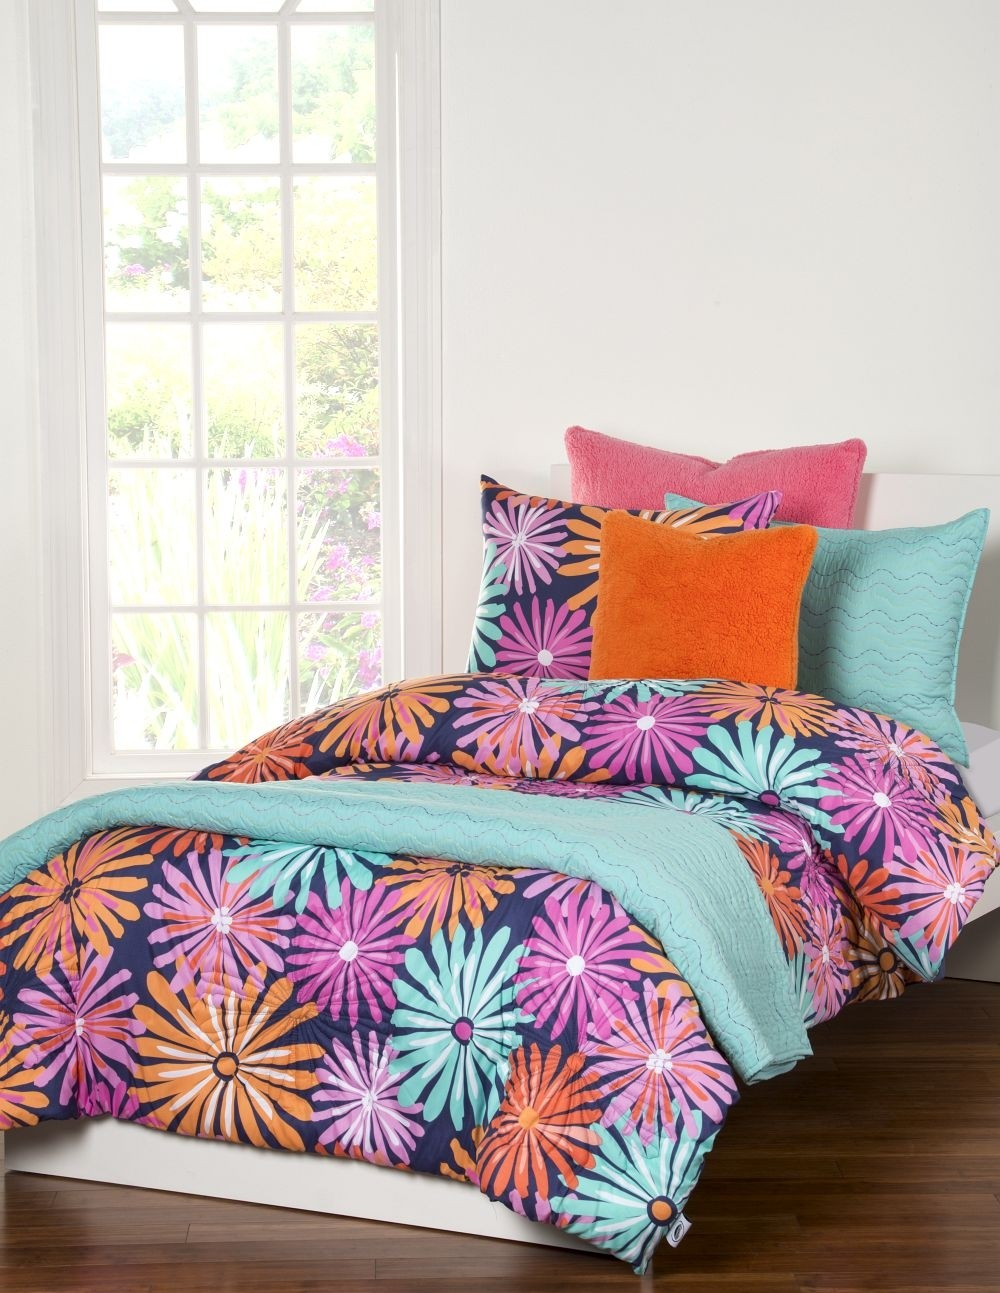 Dreaming of Daisies Bunk Bed Cap Comforter Set from Crayola  - Includes Sham(s)